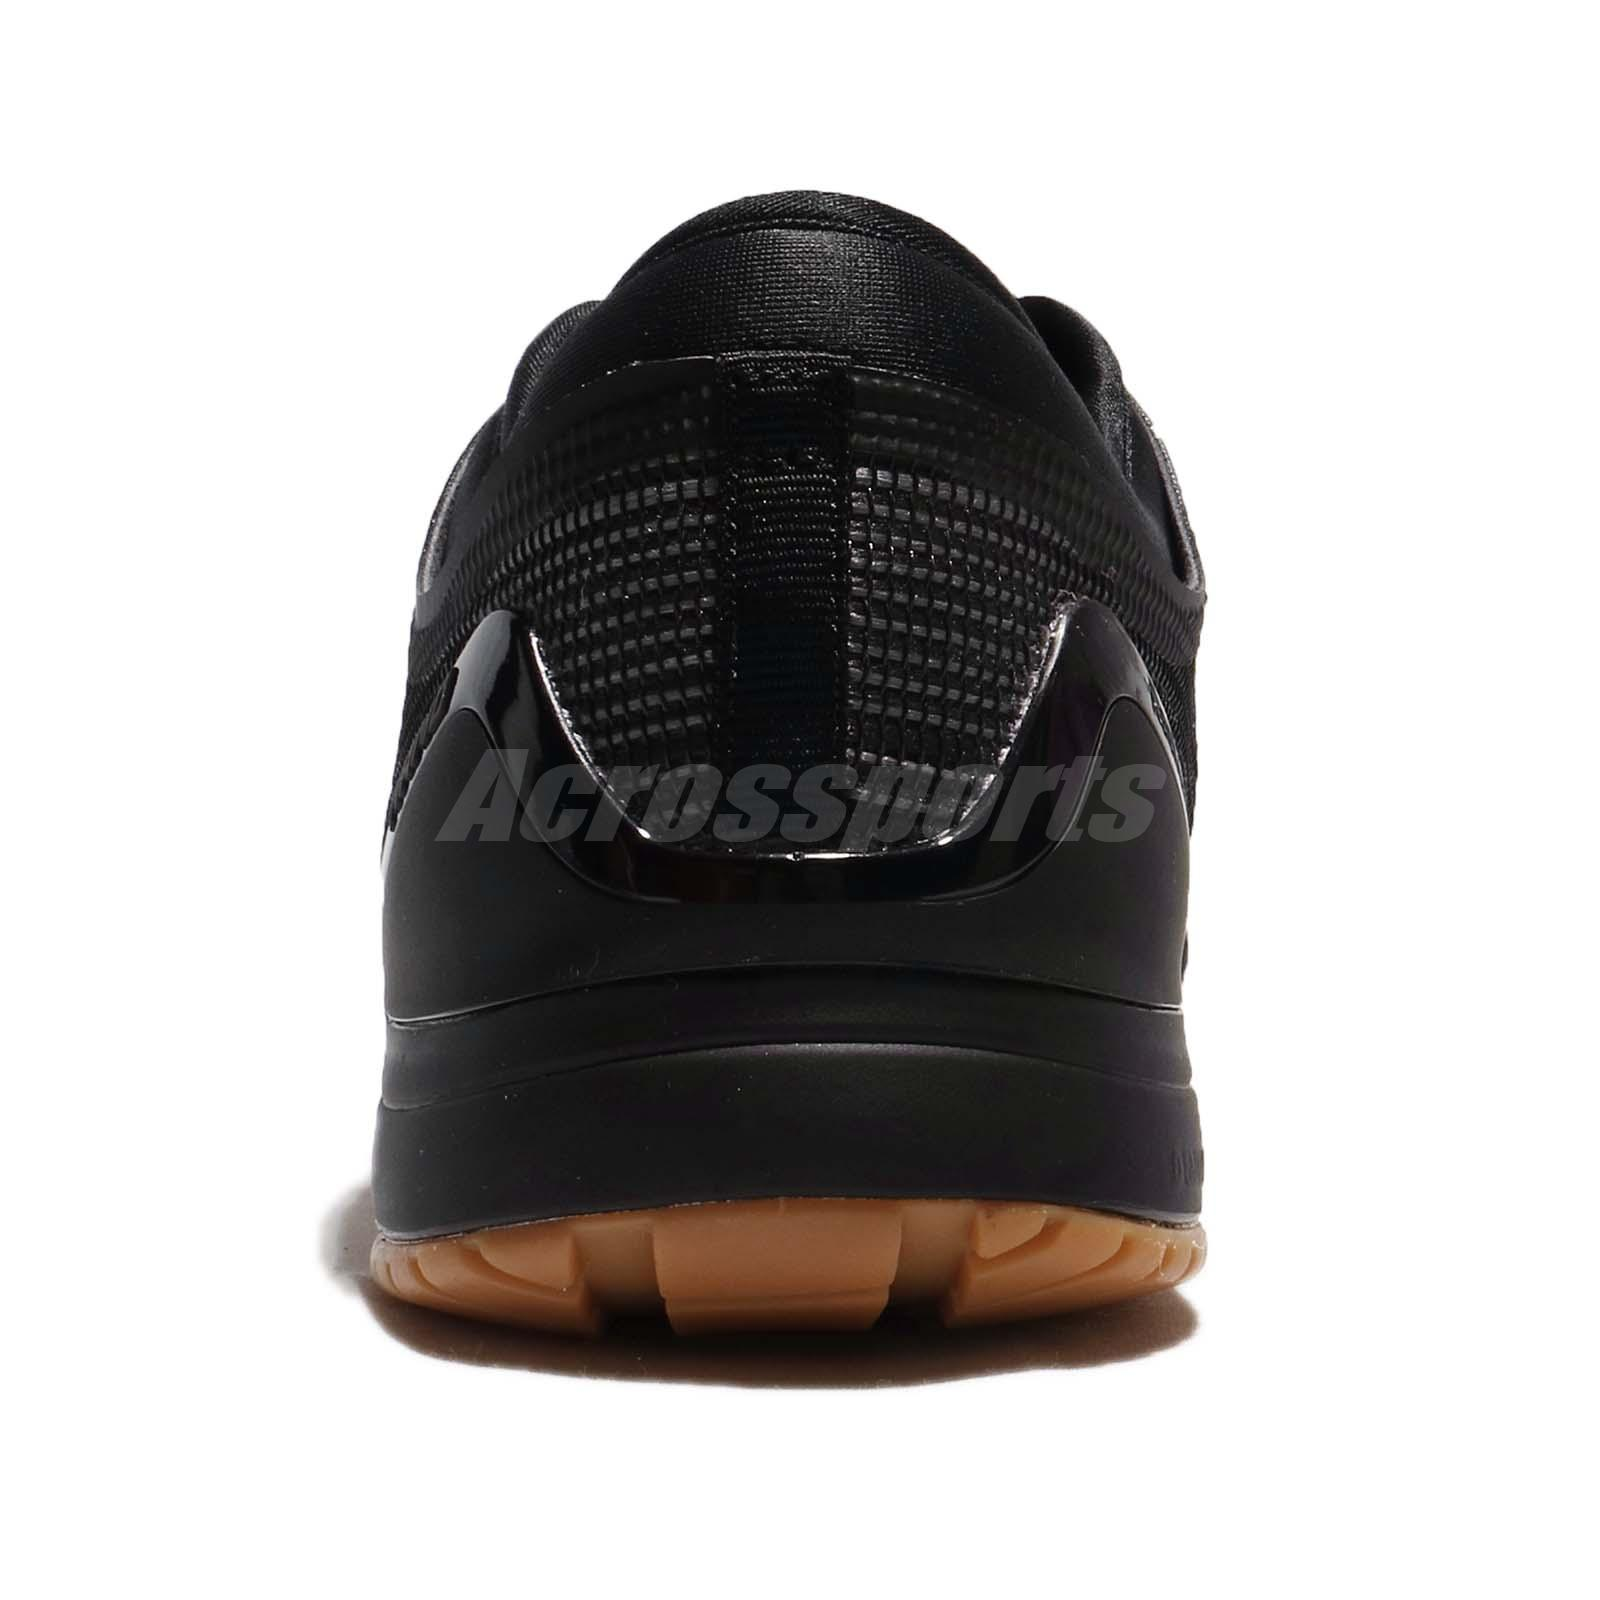 e572c1a261afac Reebok CrossFit Nano 8.0 Flexweave Black Gum Men CrossFit Training ...